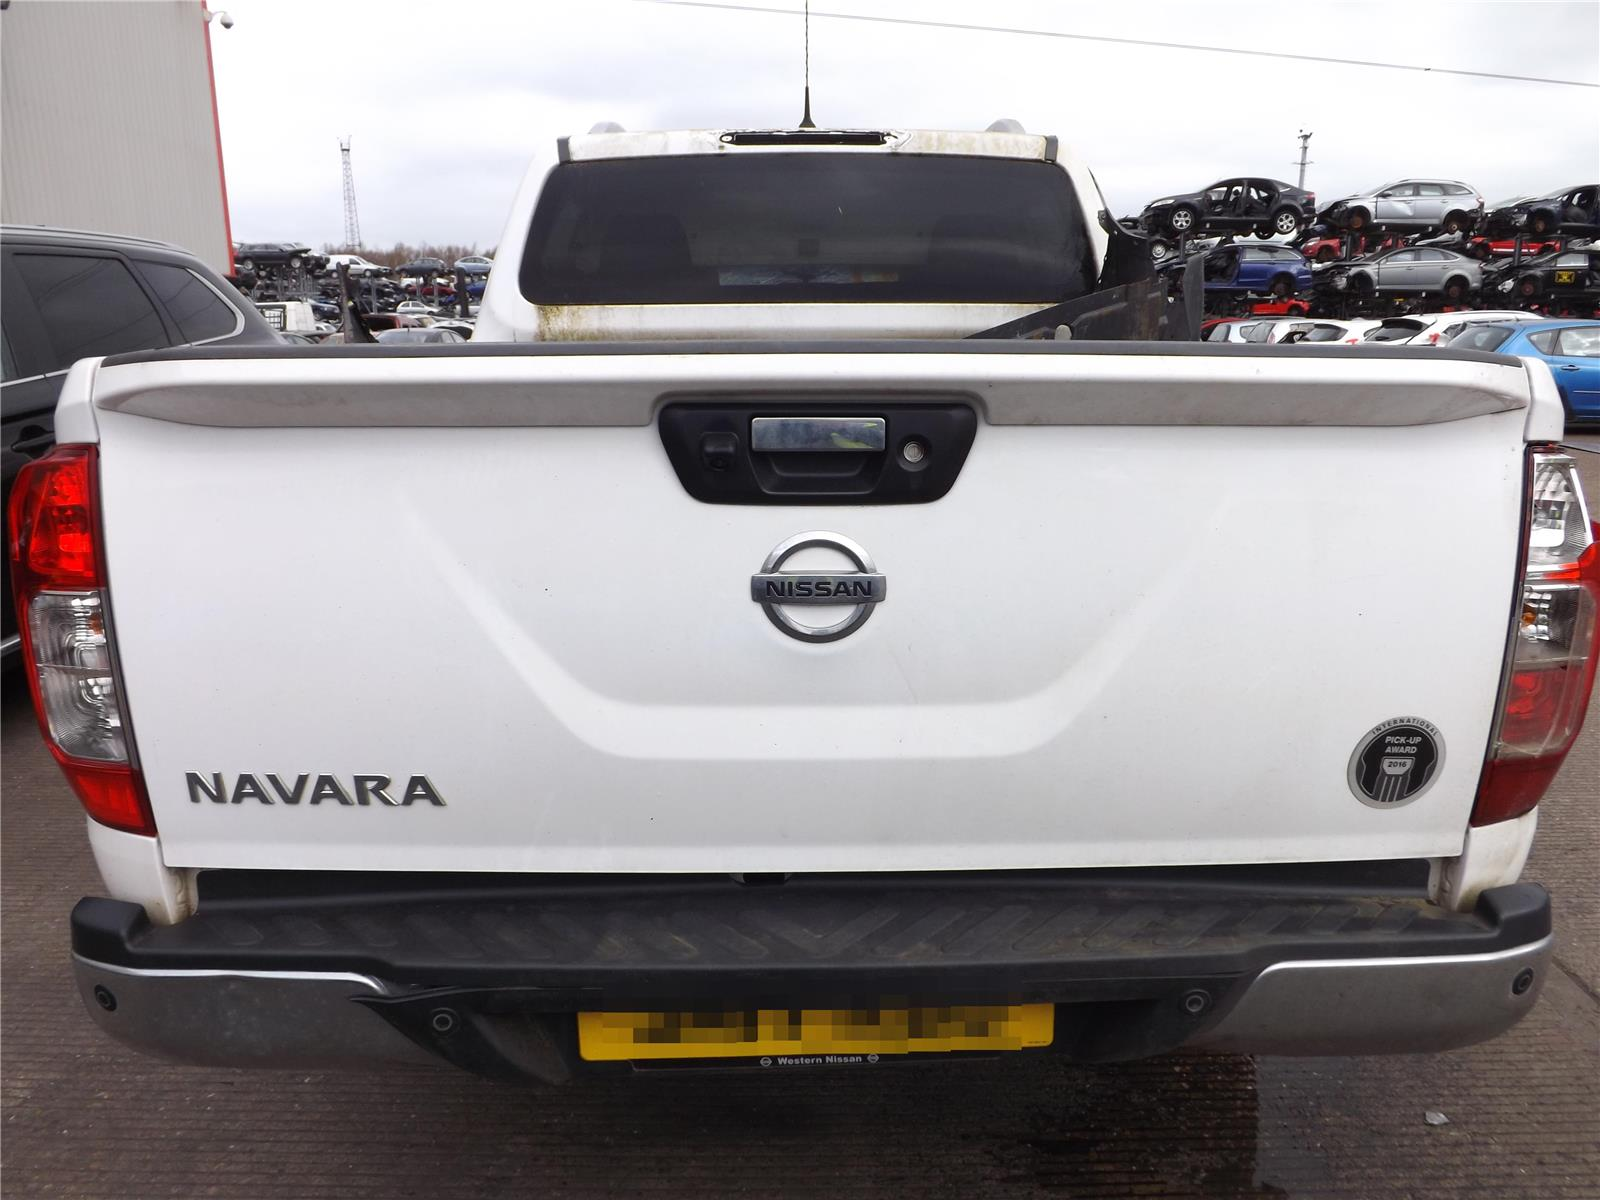 Nissan Navara 2016 On Axle Assembly Rear (Diesel / Automatic) for